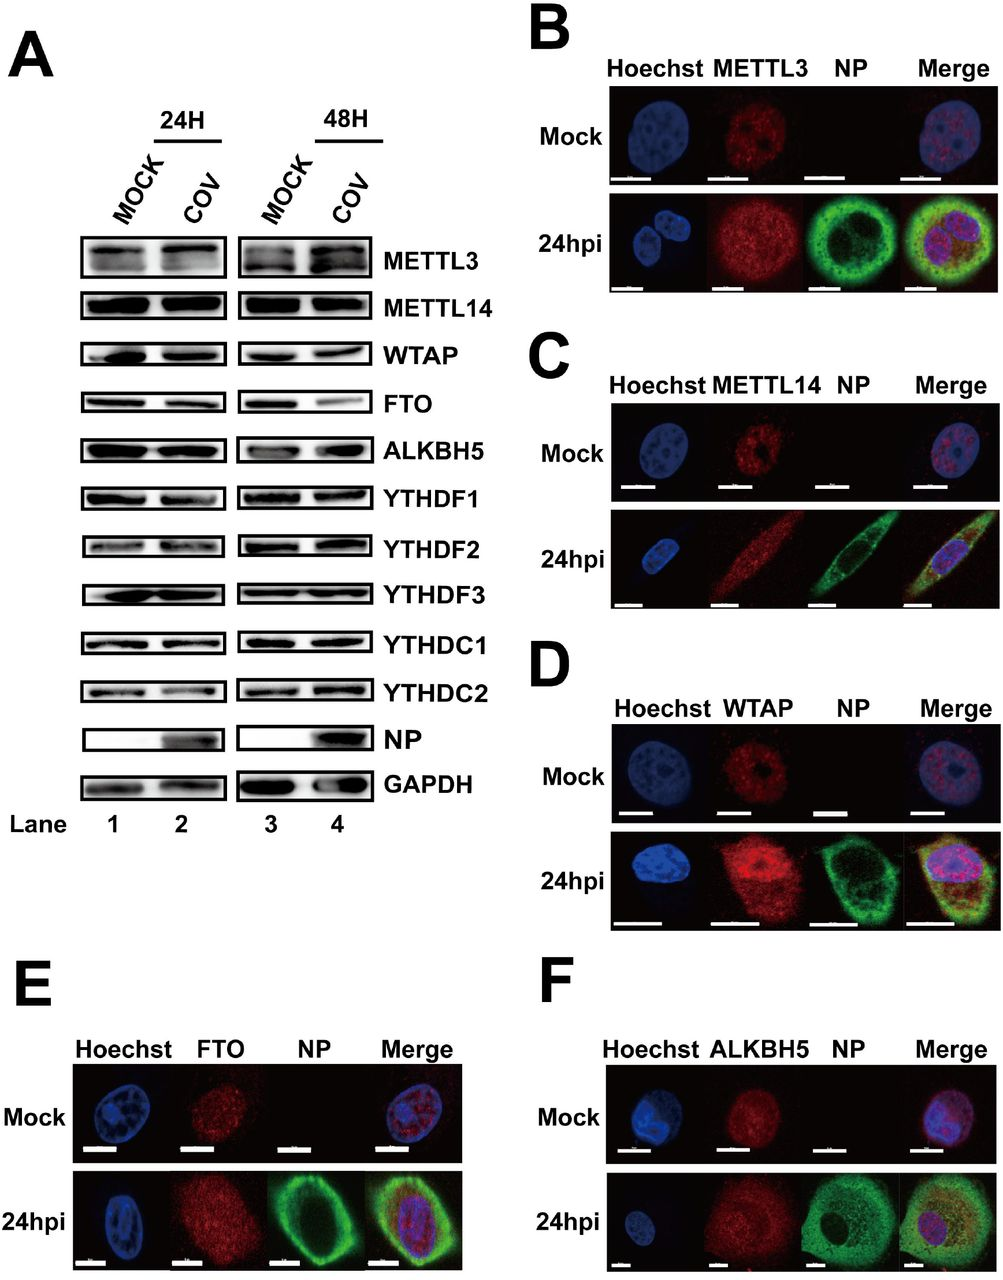 SARS-CoV-2 infection influenced the expression patterns of m 6 A-related proteins. Vero-E6 cells infected with SARS-CoV-2 (MOI = 0.01) were harvested at 24 and 48 hpi. Western blotting was performed with antibodies as indicated. GAPDH was used as a loading control. (B–F) Confocal microscopy images of SARS-CoV-2-or mock-infected Vero-E6 cells. The nucleus (blue) and virus protein NP (green) were labeled with Hoechst and anti-NP1-specific antibodies, respectively. The methyltransferases and demethylases were stained with antibodies as indicated. Scale bars, 5 μm.